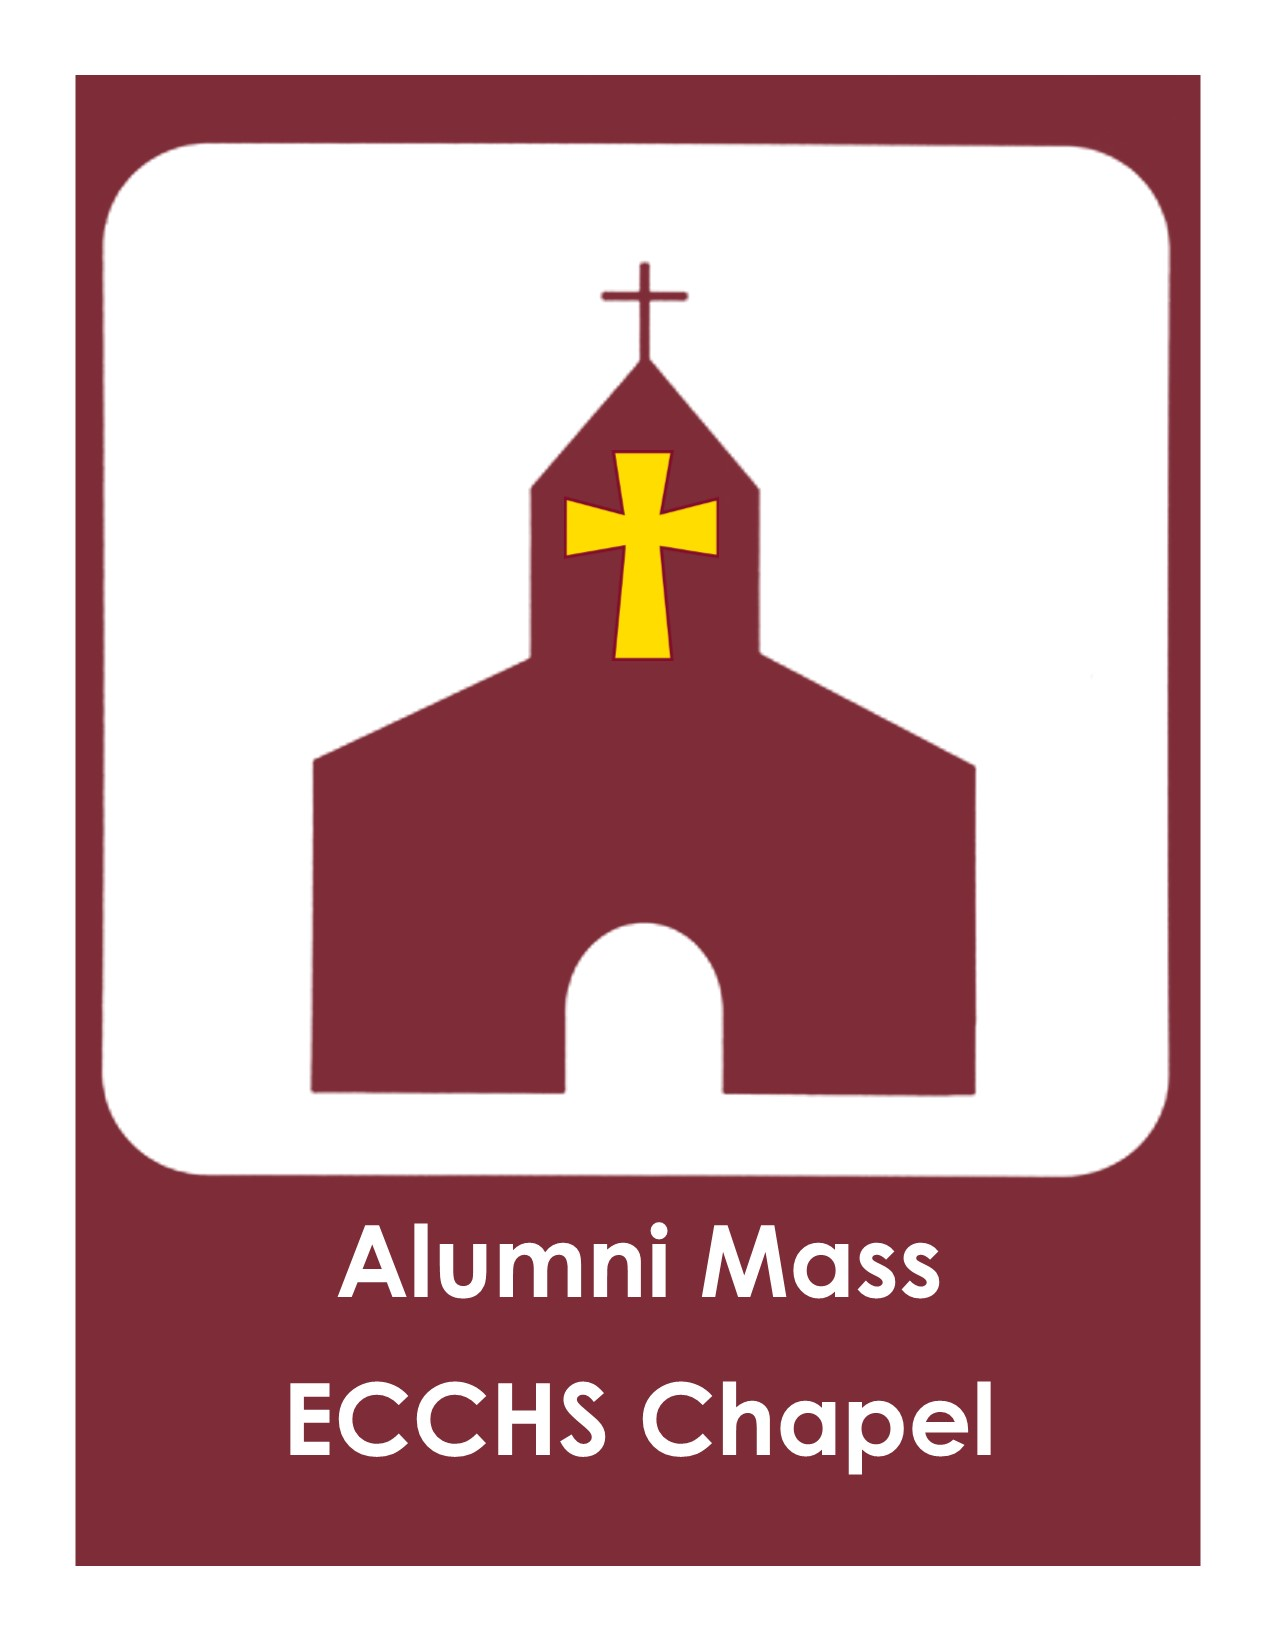 Alumni Mass-postponed till further notice @ ECCHS Chapel